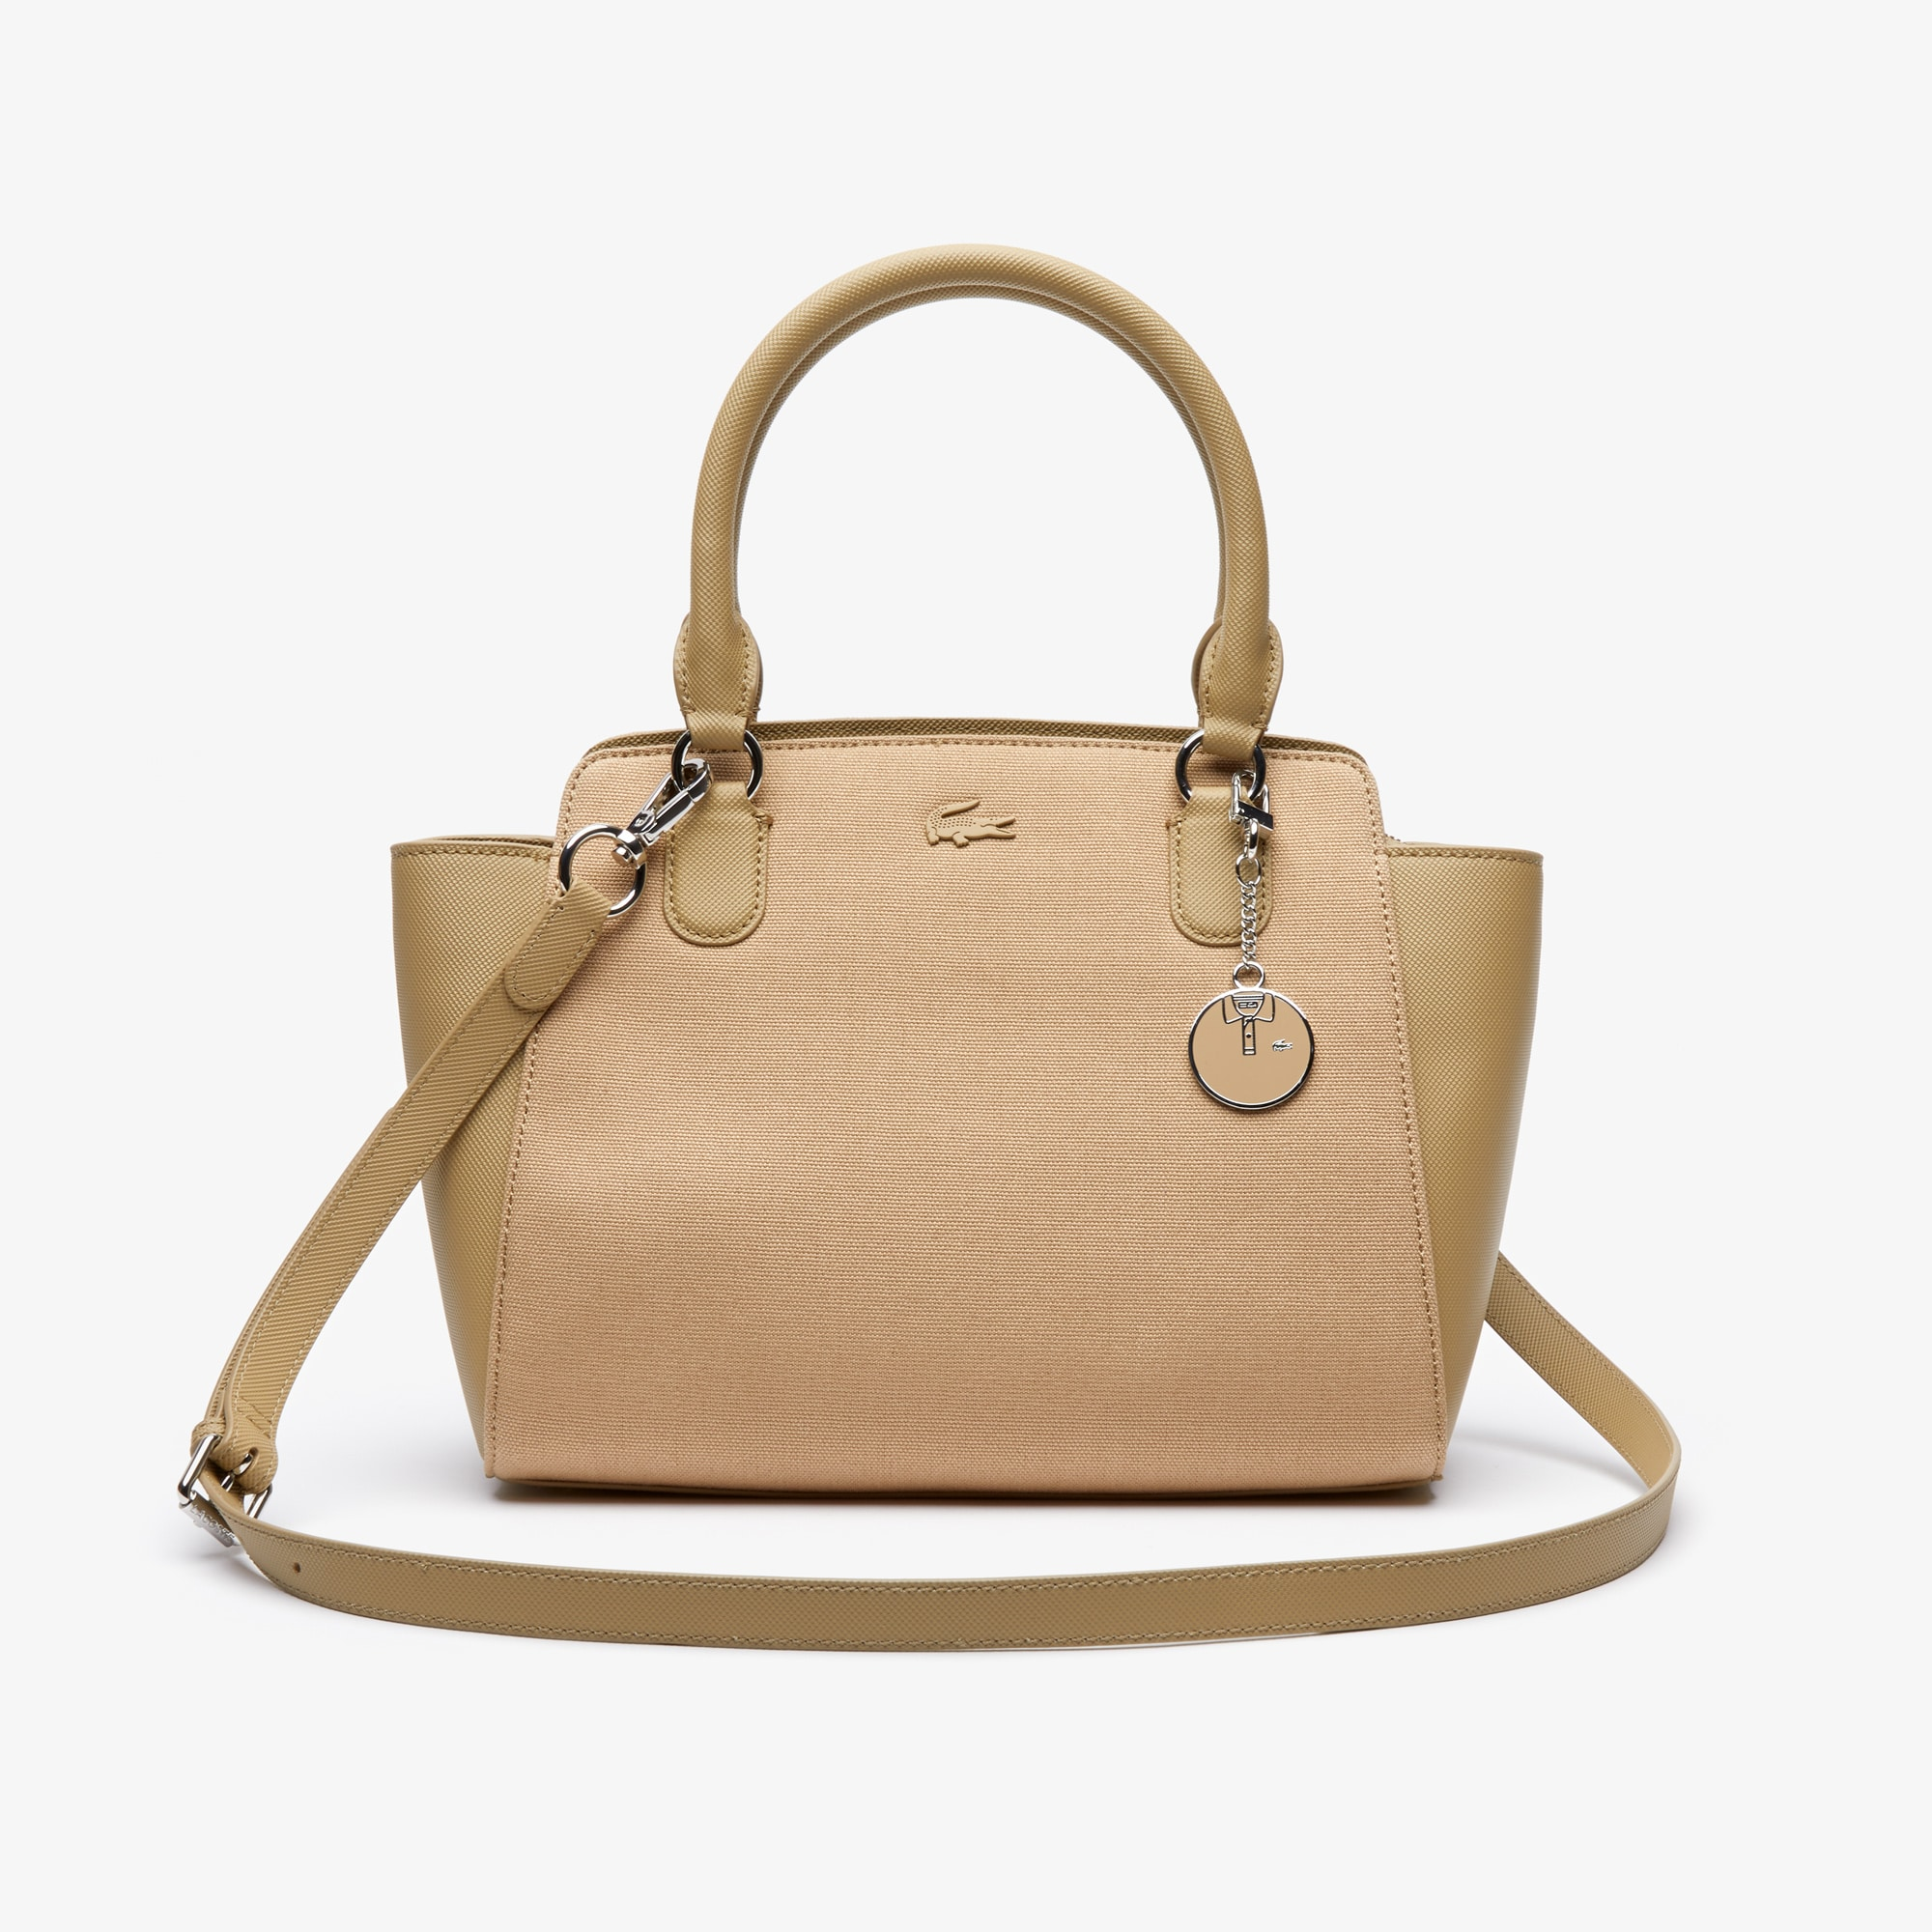 Women's Daily Classic Gusseted Tote Bag by Lacoste